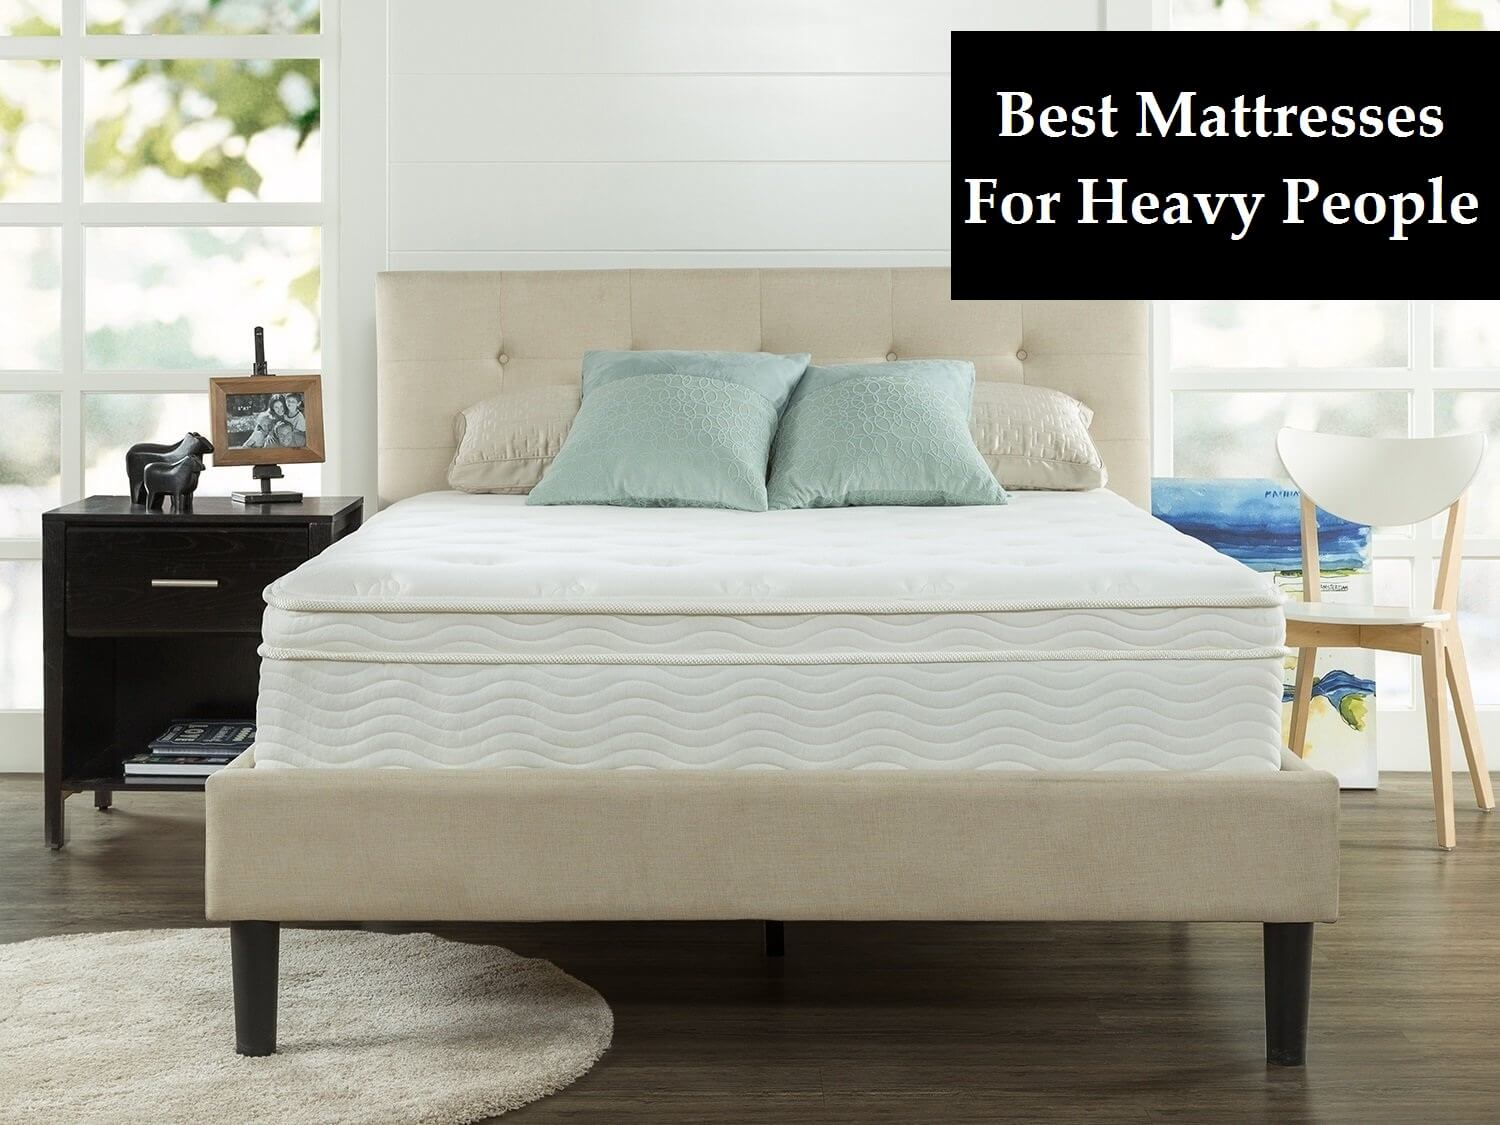 Ratings On Mattresses >> Top 7 Best Mattresses For Heavy People Buying Guide Ratings